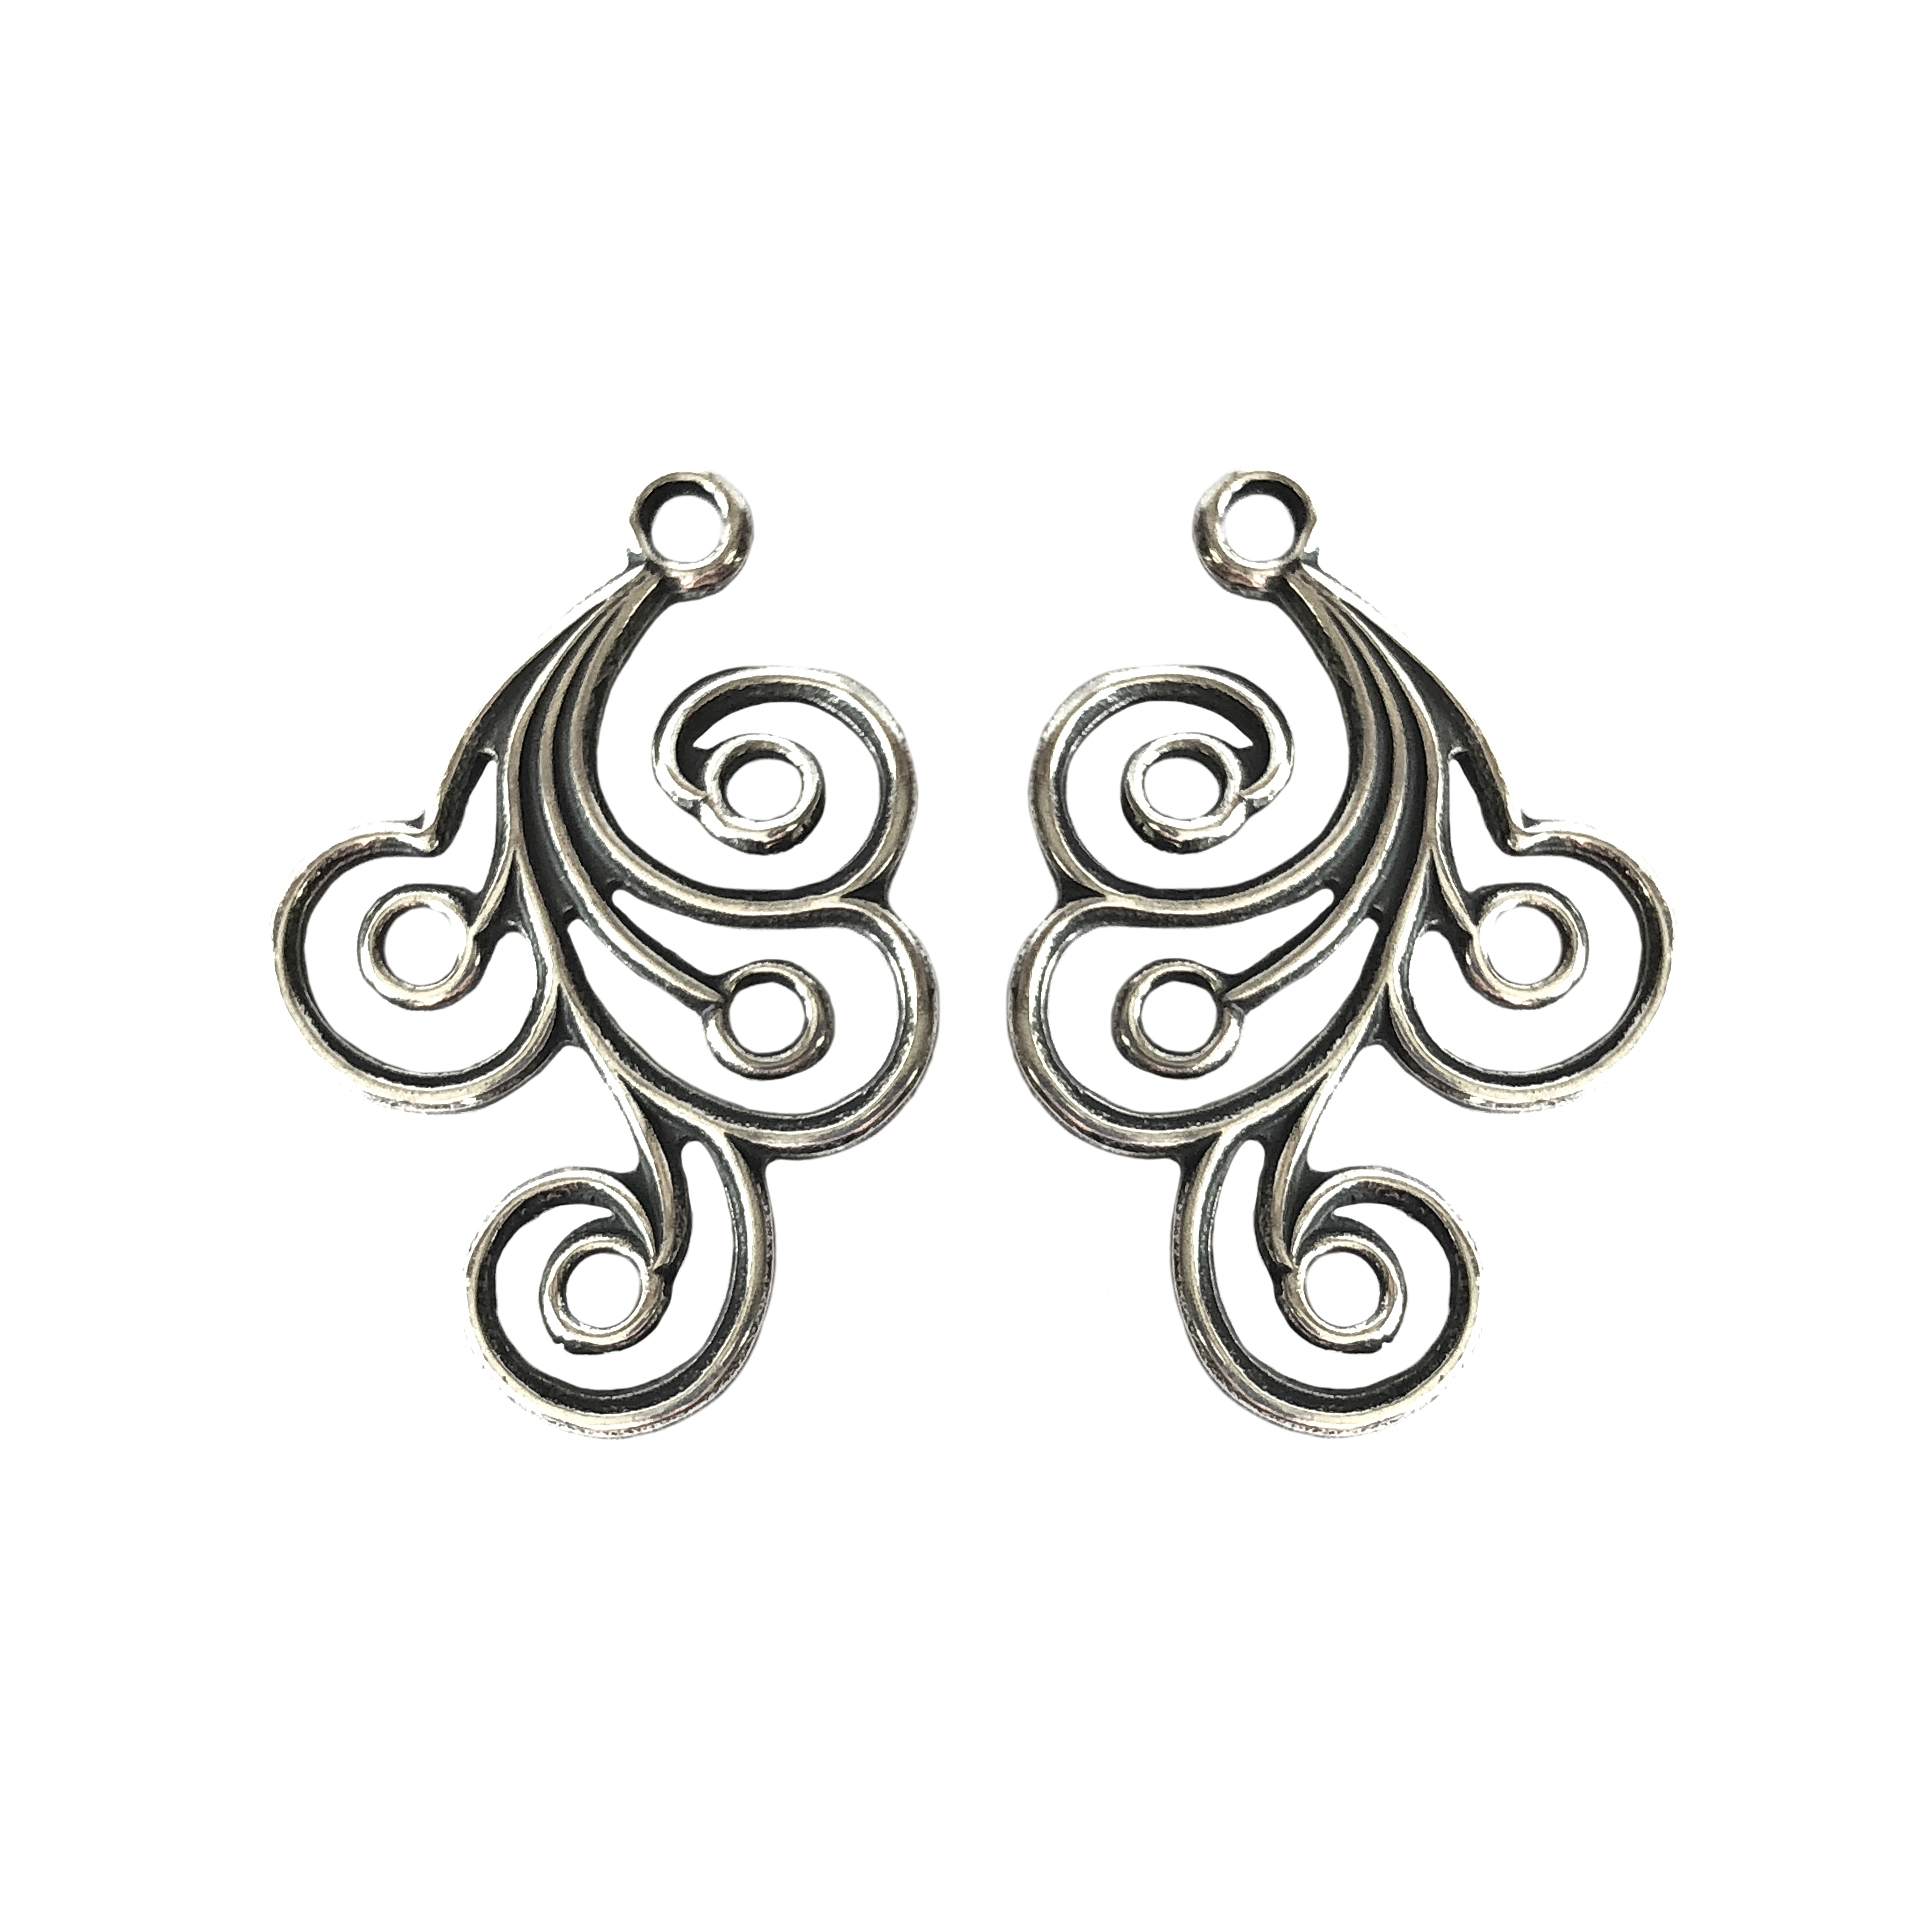 brass ear drops, brass filigree, silver, 01714, B'sue Boutiques, nickel free, US made, brass jewelry parts, vintage jewellery supplies, antique silver, silverware silverplate, brass ear rings, silverplate ear rings